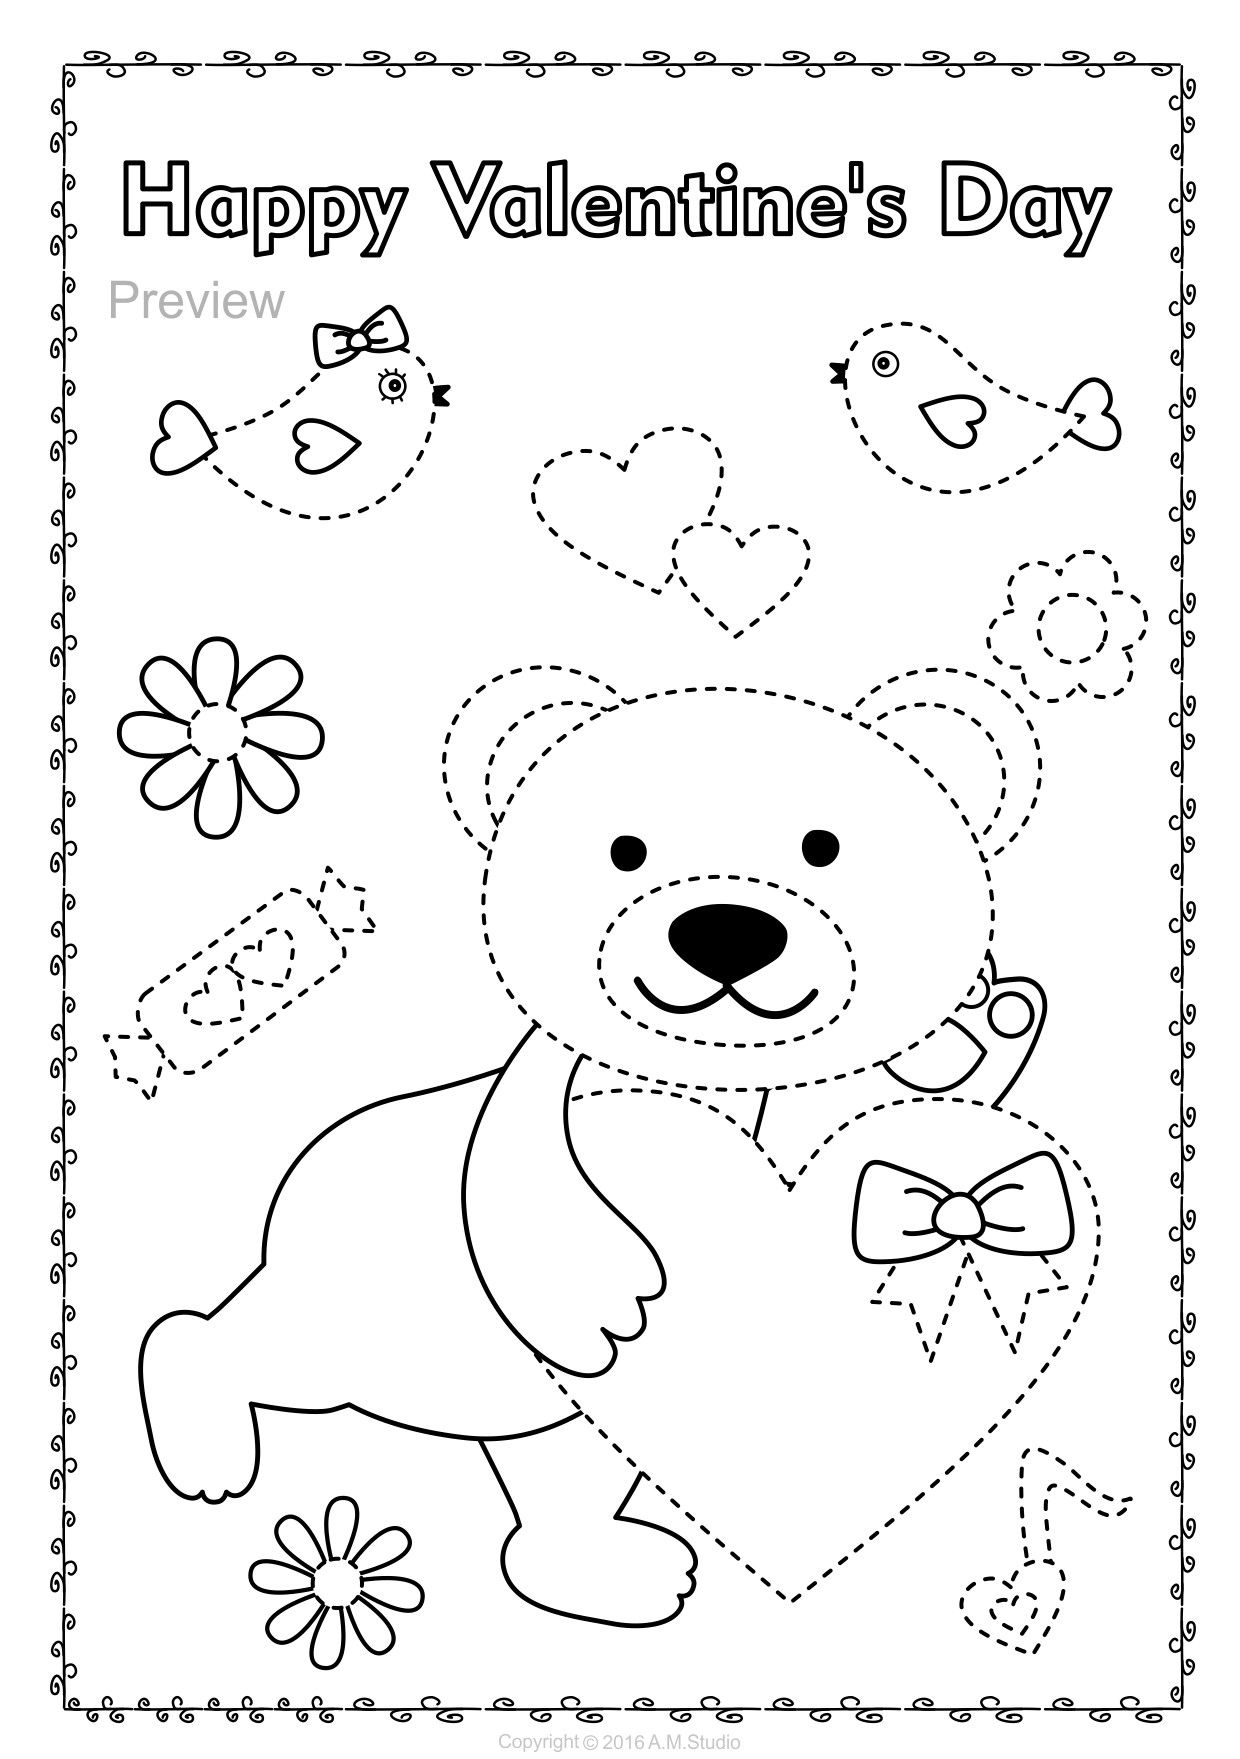 15 Groundhog Day Coloring Worksheets Reginald Penhorst